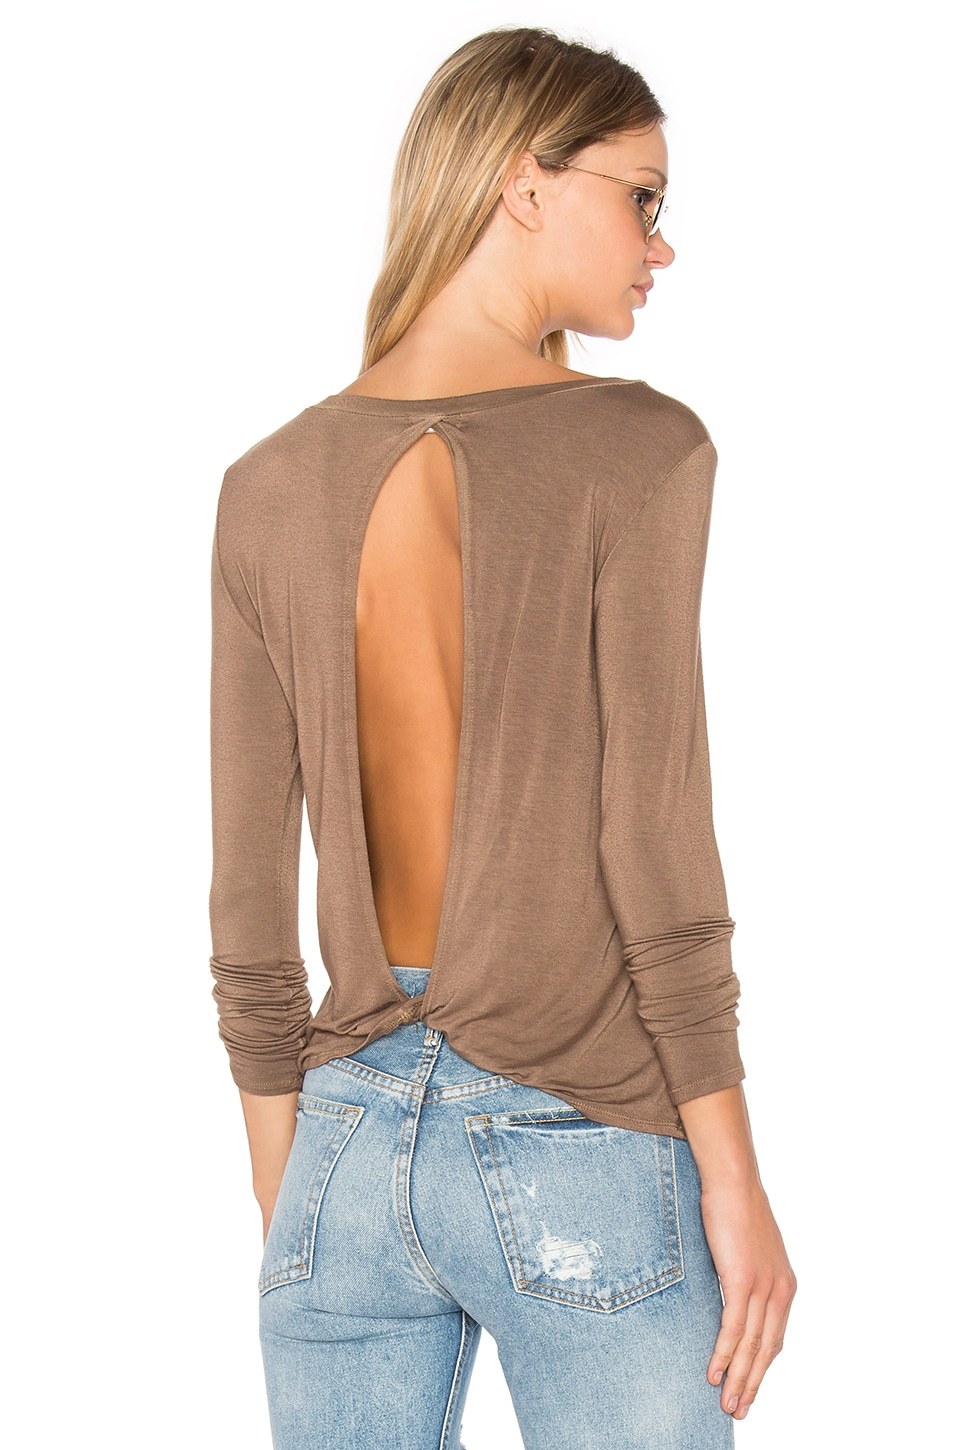 NYTT Twist Back Tee in Mocha